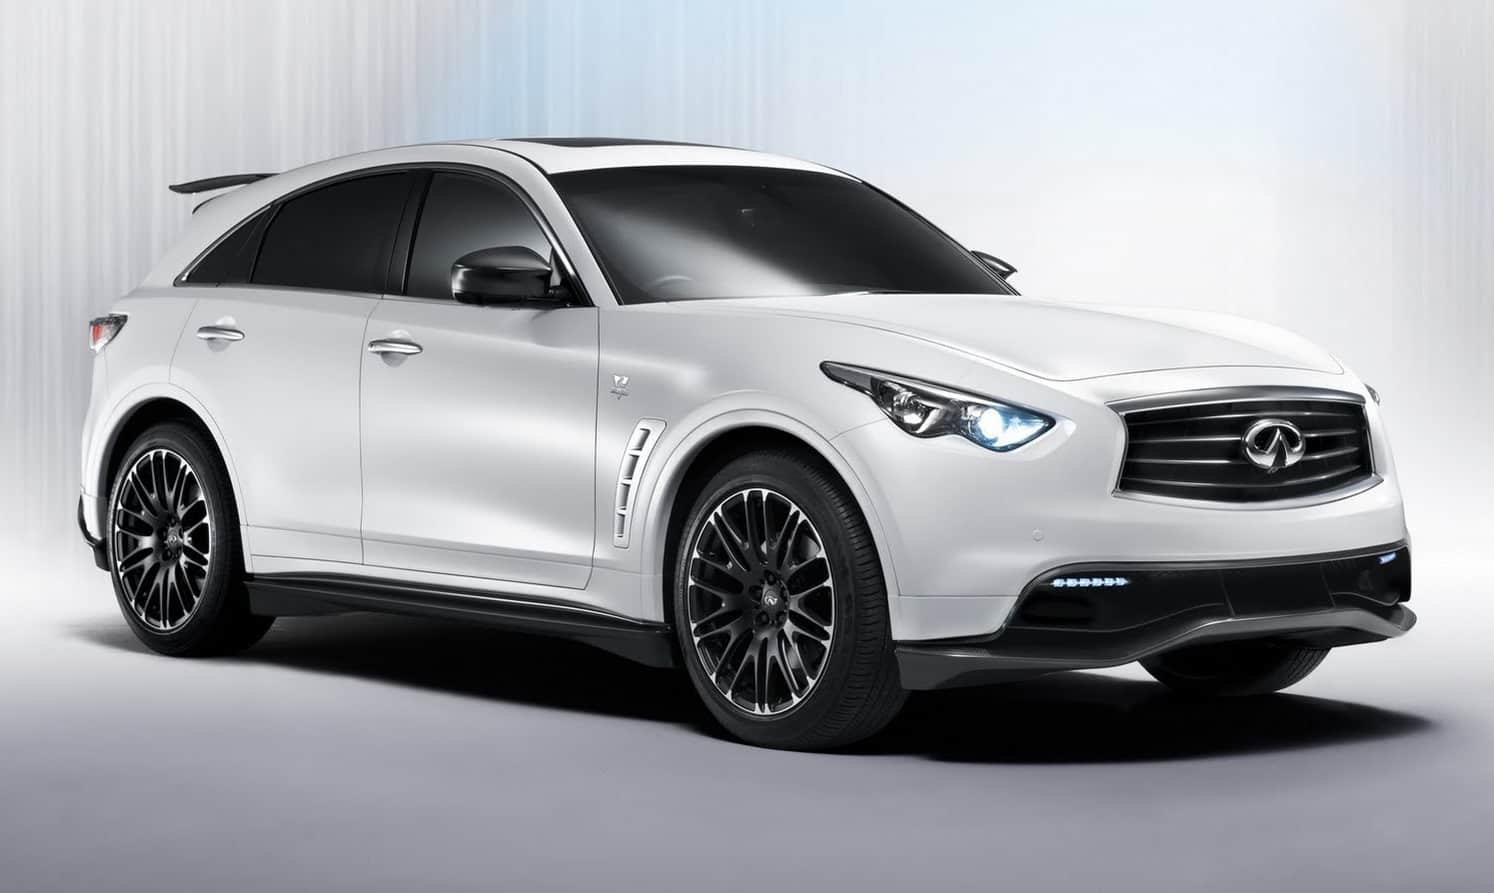 Dream Cars: Infiniti FX Vettle Edition - BEVERLY HILLS MAGAZINE